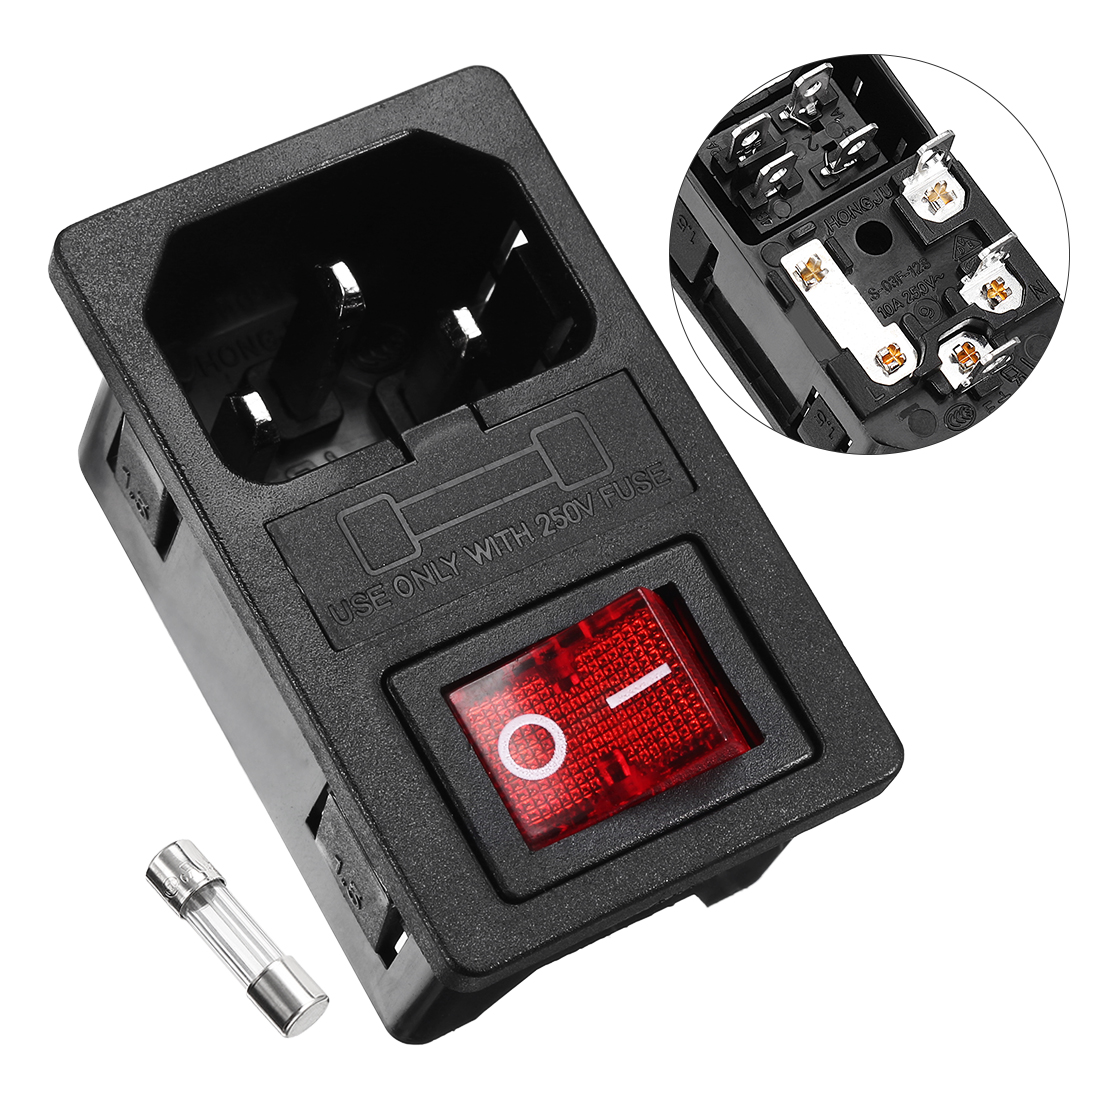 Indicator KCD1-104 DPST ON/OFF Rocker Switch 250V 10A w Fuse Holder w IEC320 C14 Power Inlet